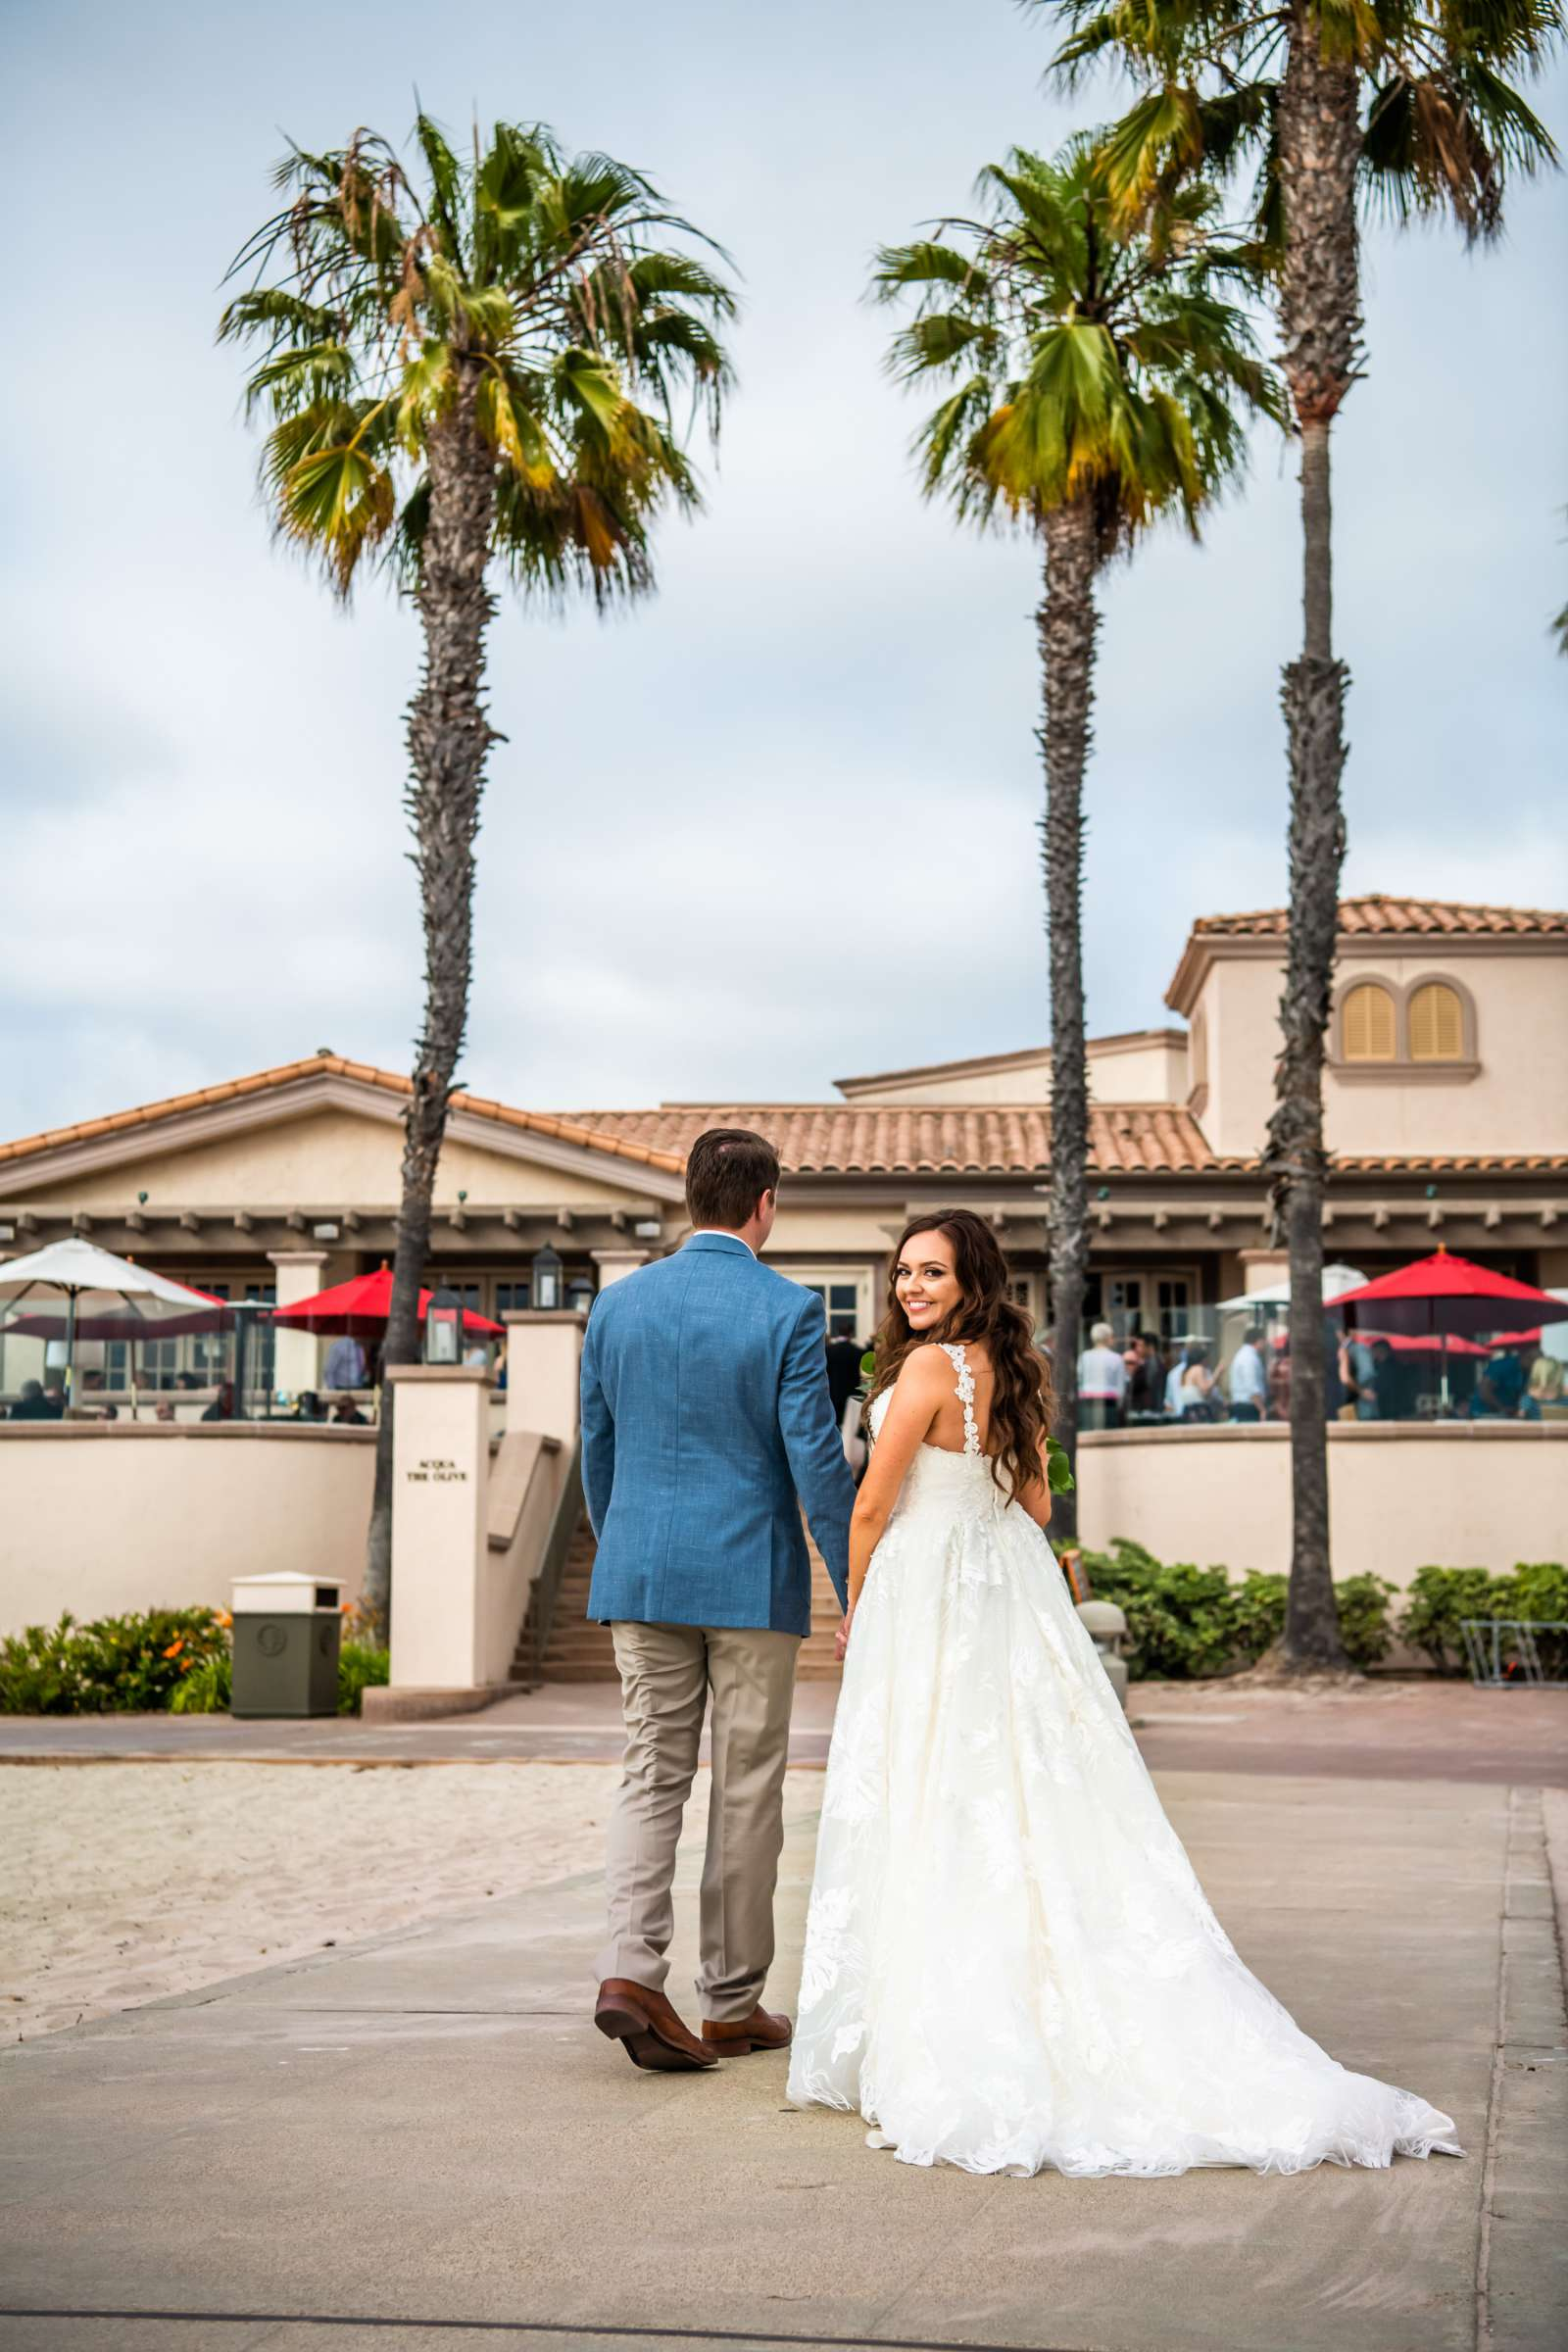 San Diego Mission Bay Resort Wedding coordinated by Cafe Au Love, Lauren and Adam Wedding Photo #20 by True Photography